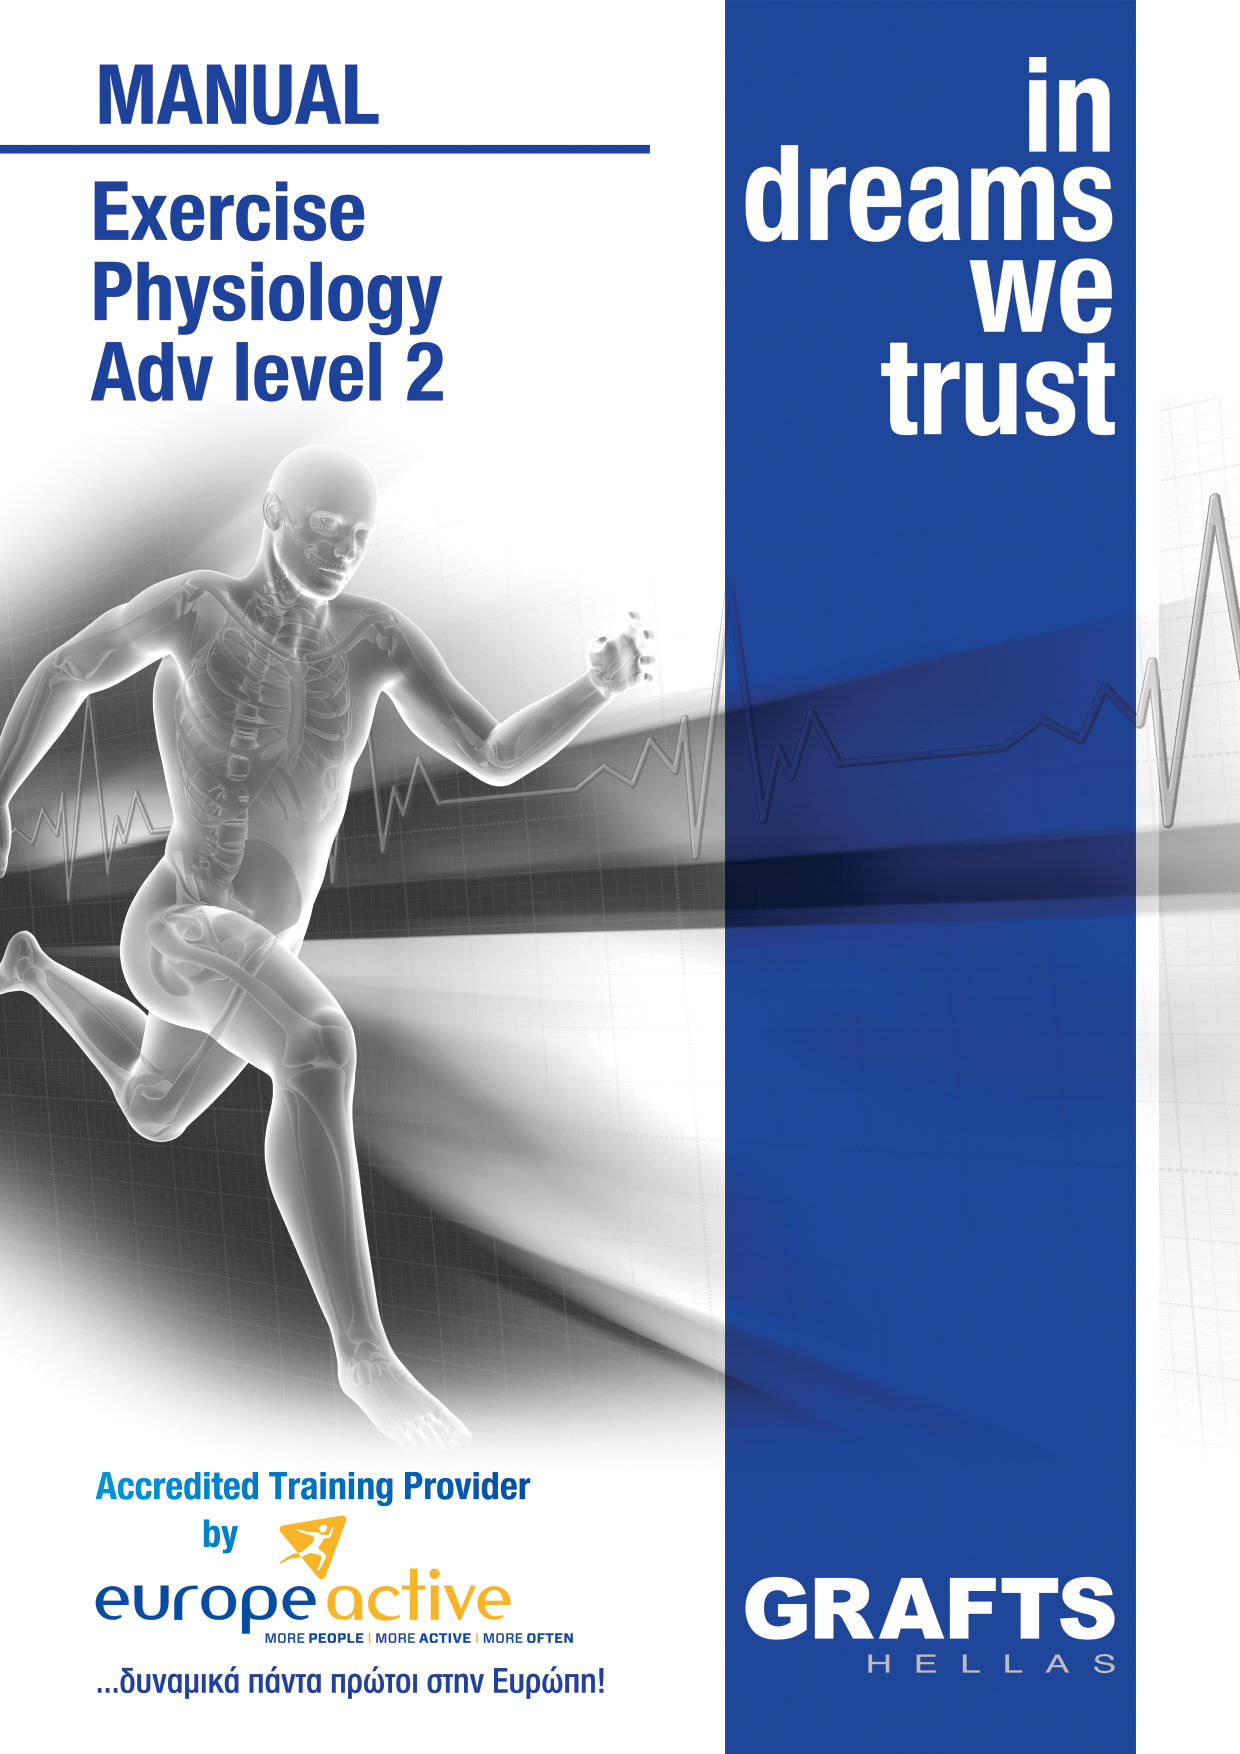 Grafts Hellas manual - Exercise Physiology - Adv Level 2